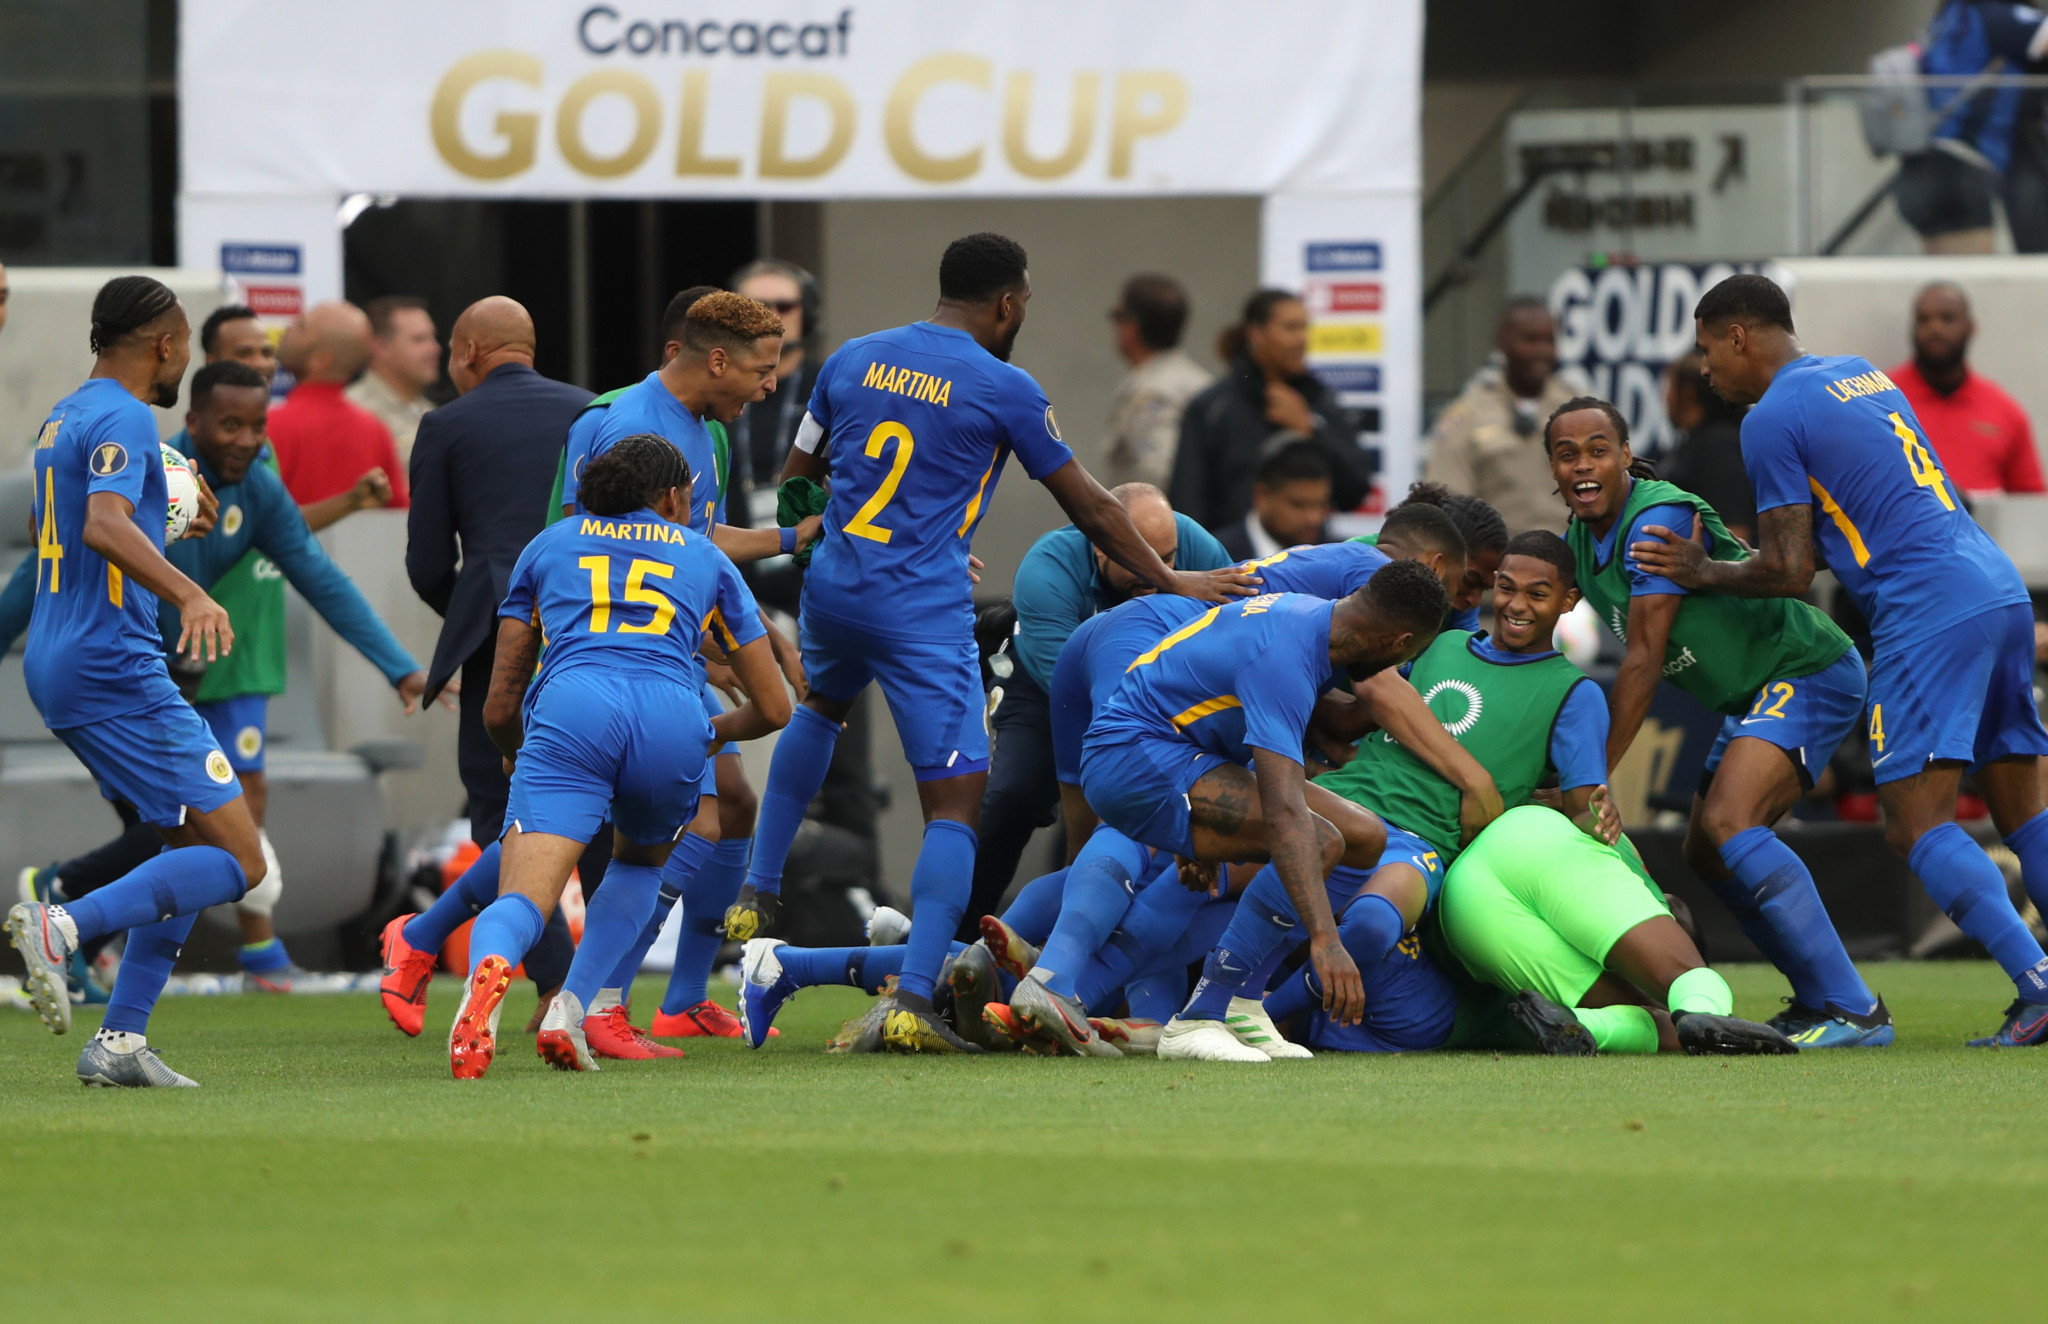 Curaçao join Jamaica in Gold Cup last eight after Gaari's 93rd-minute thunderbolt